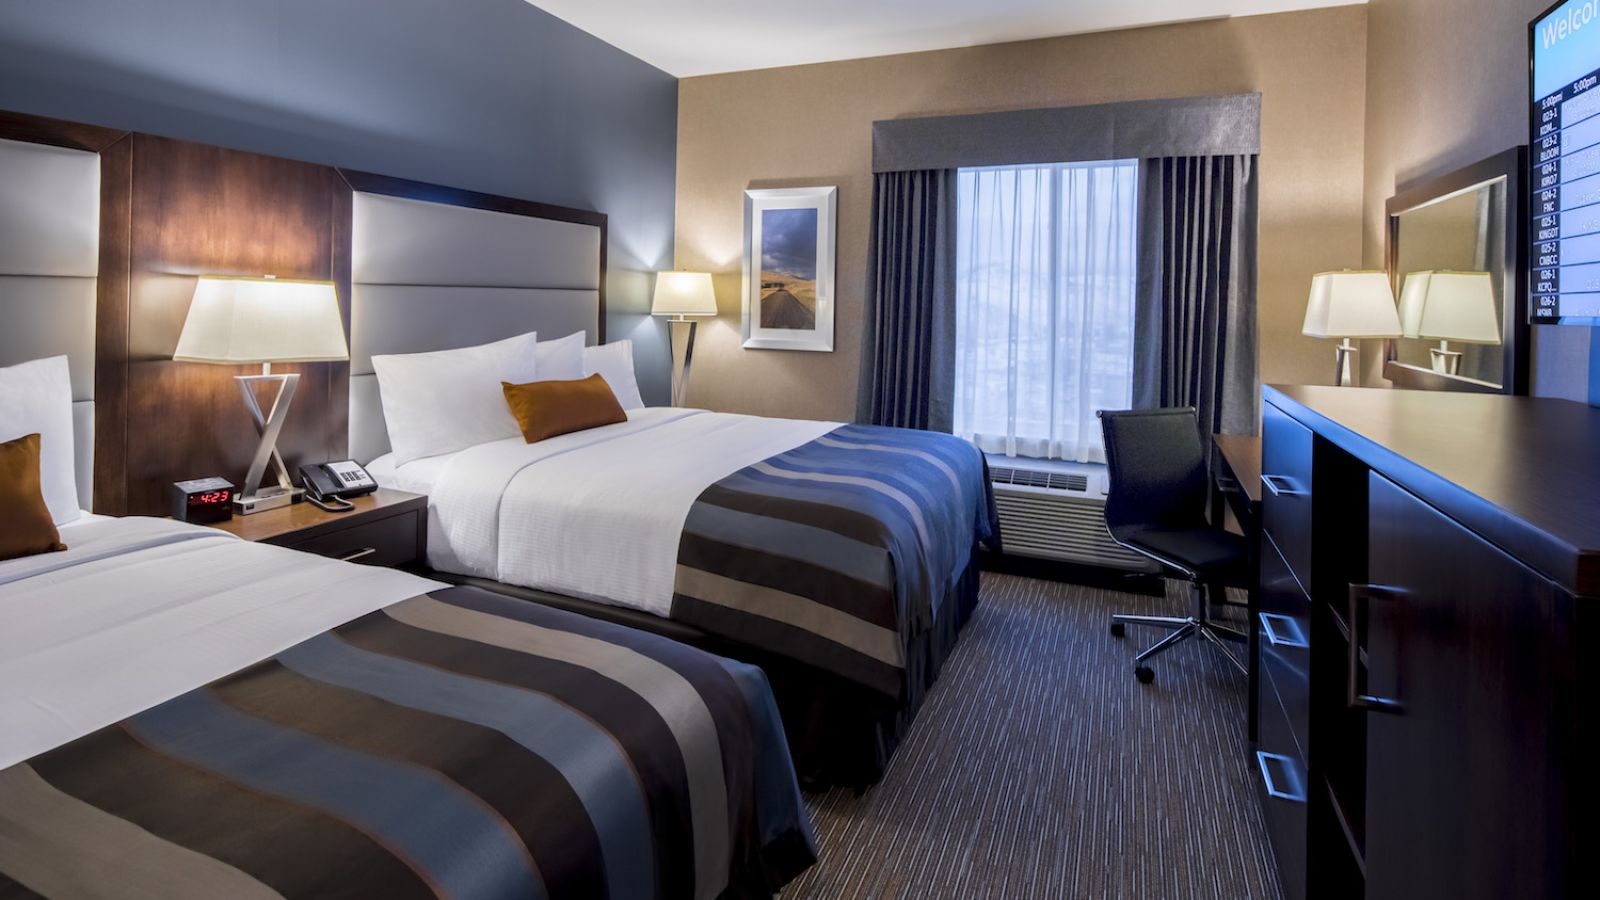 Standard Q/Q room at the Wingate by Wyndham Kamloops